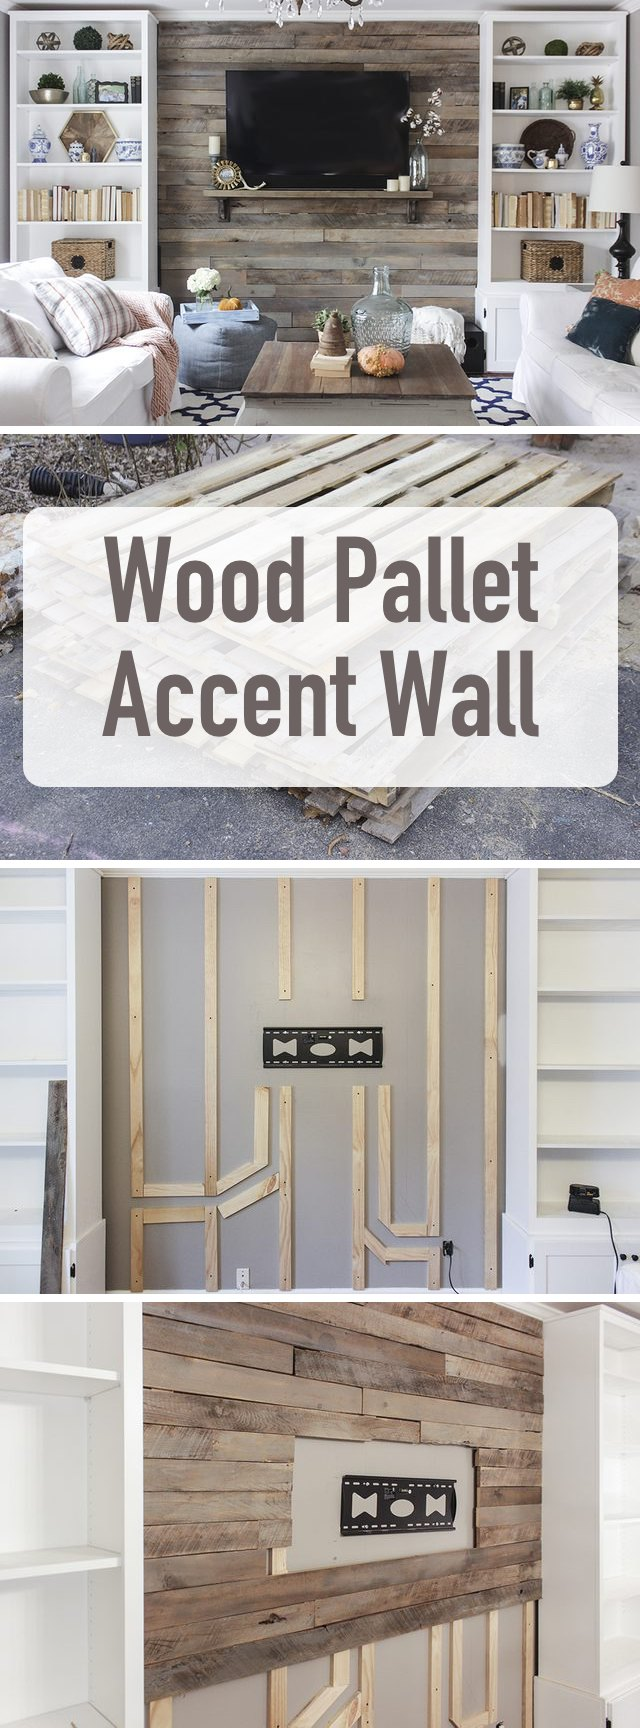 Create a Wood Pallet Accent Wall